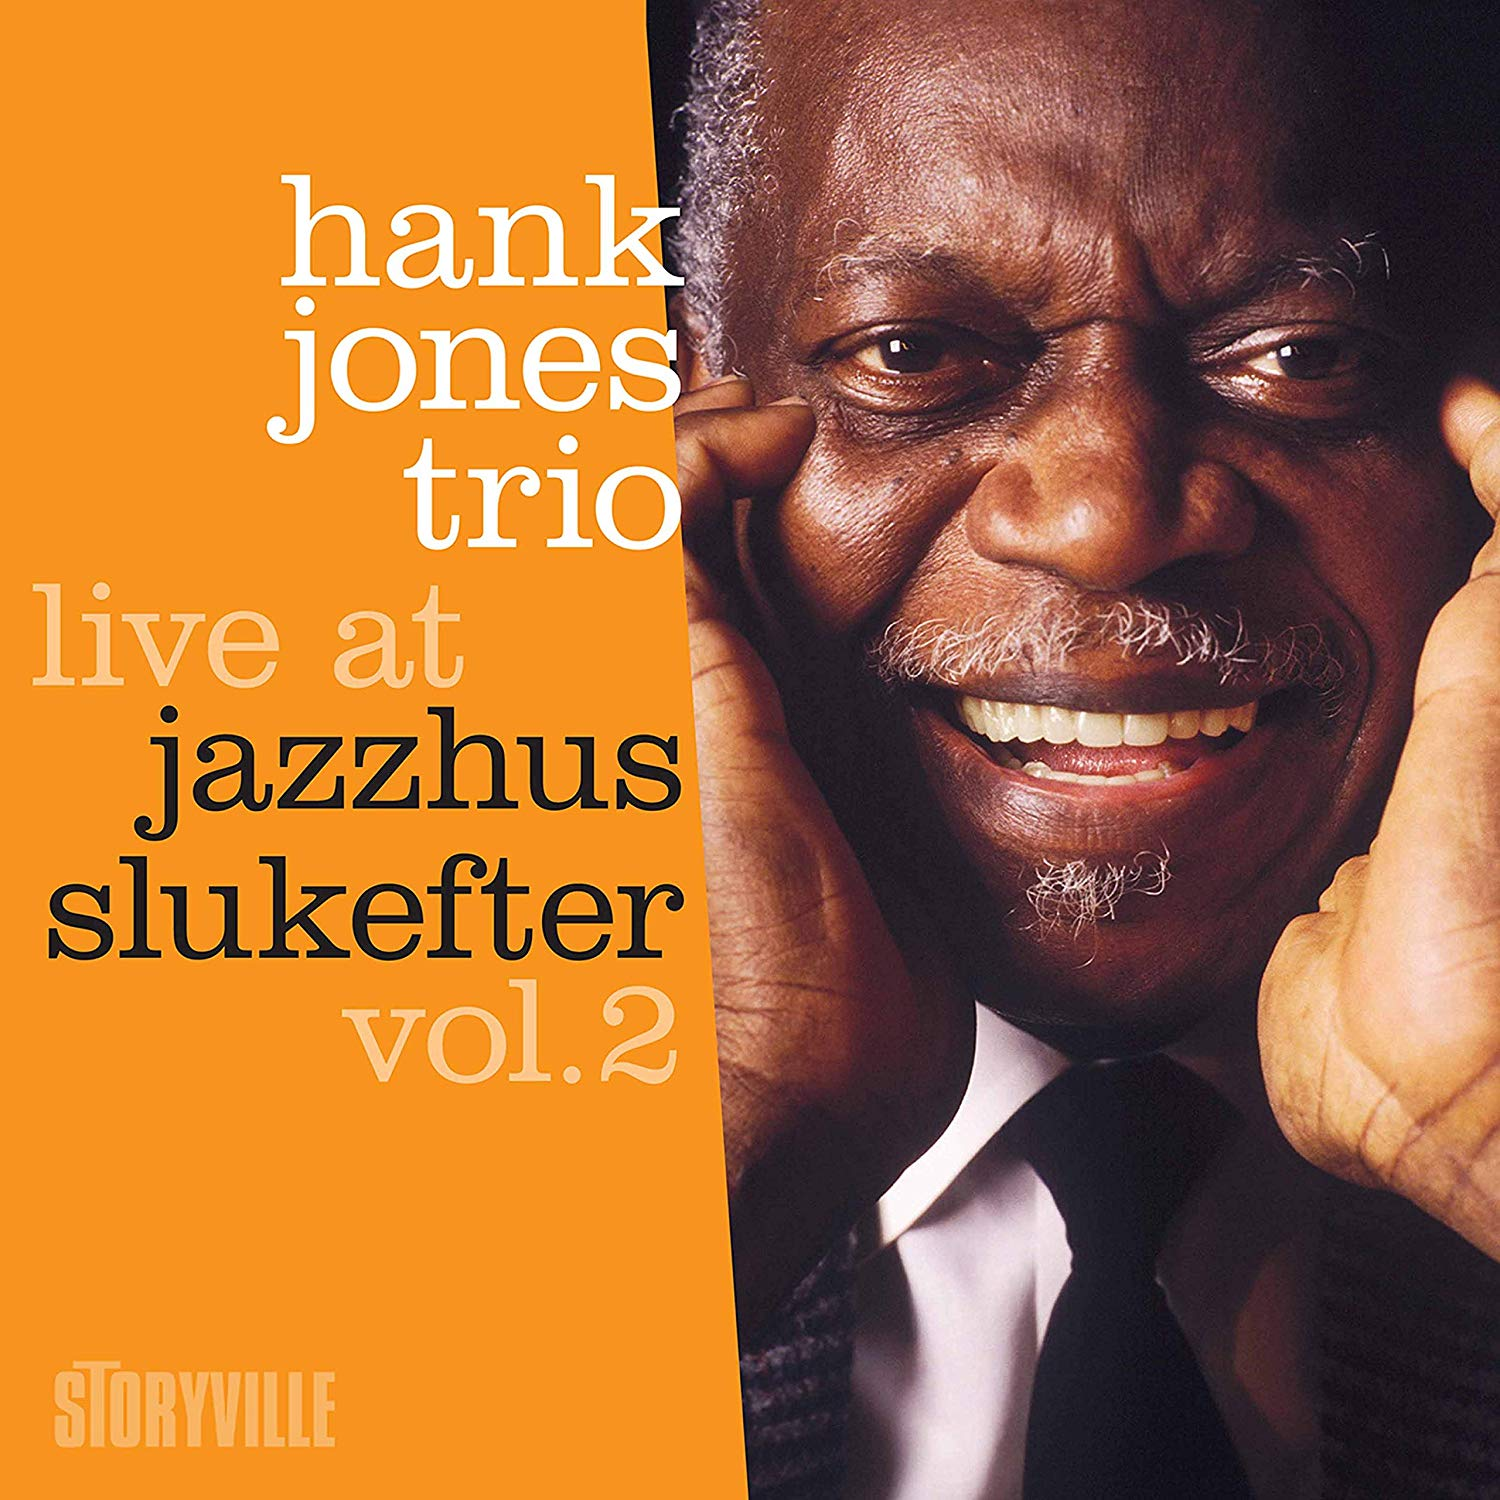 HANK JONES - Live at Jazzhus Slukefter vol.2 cover